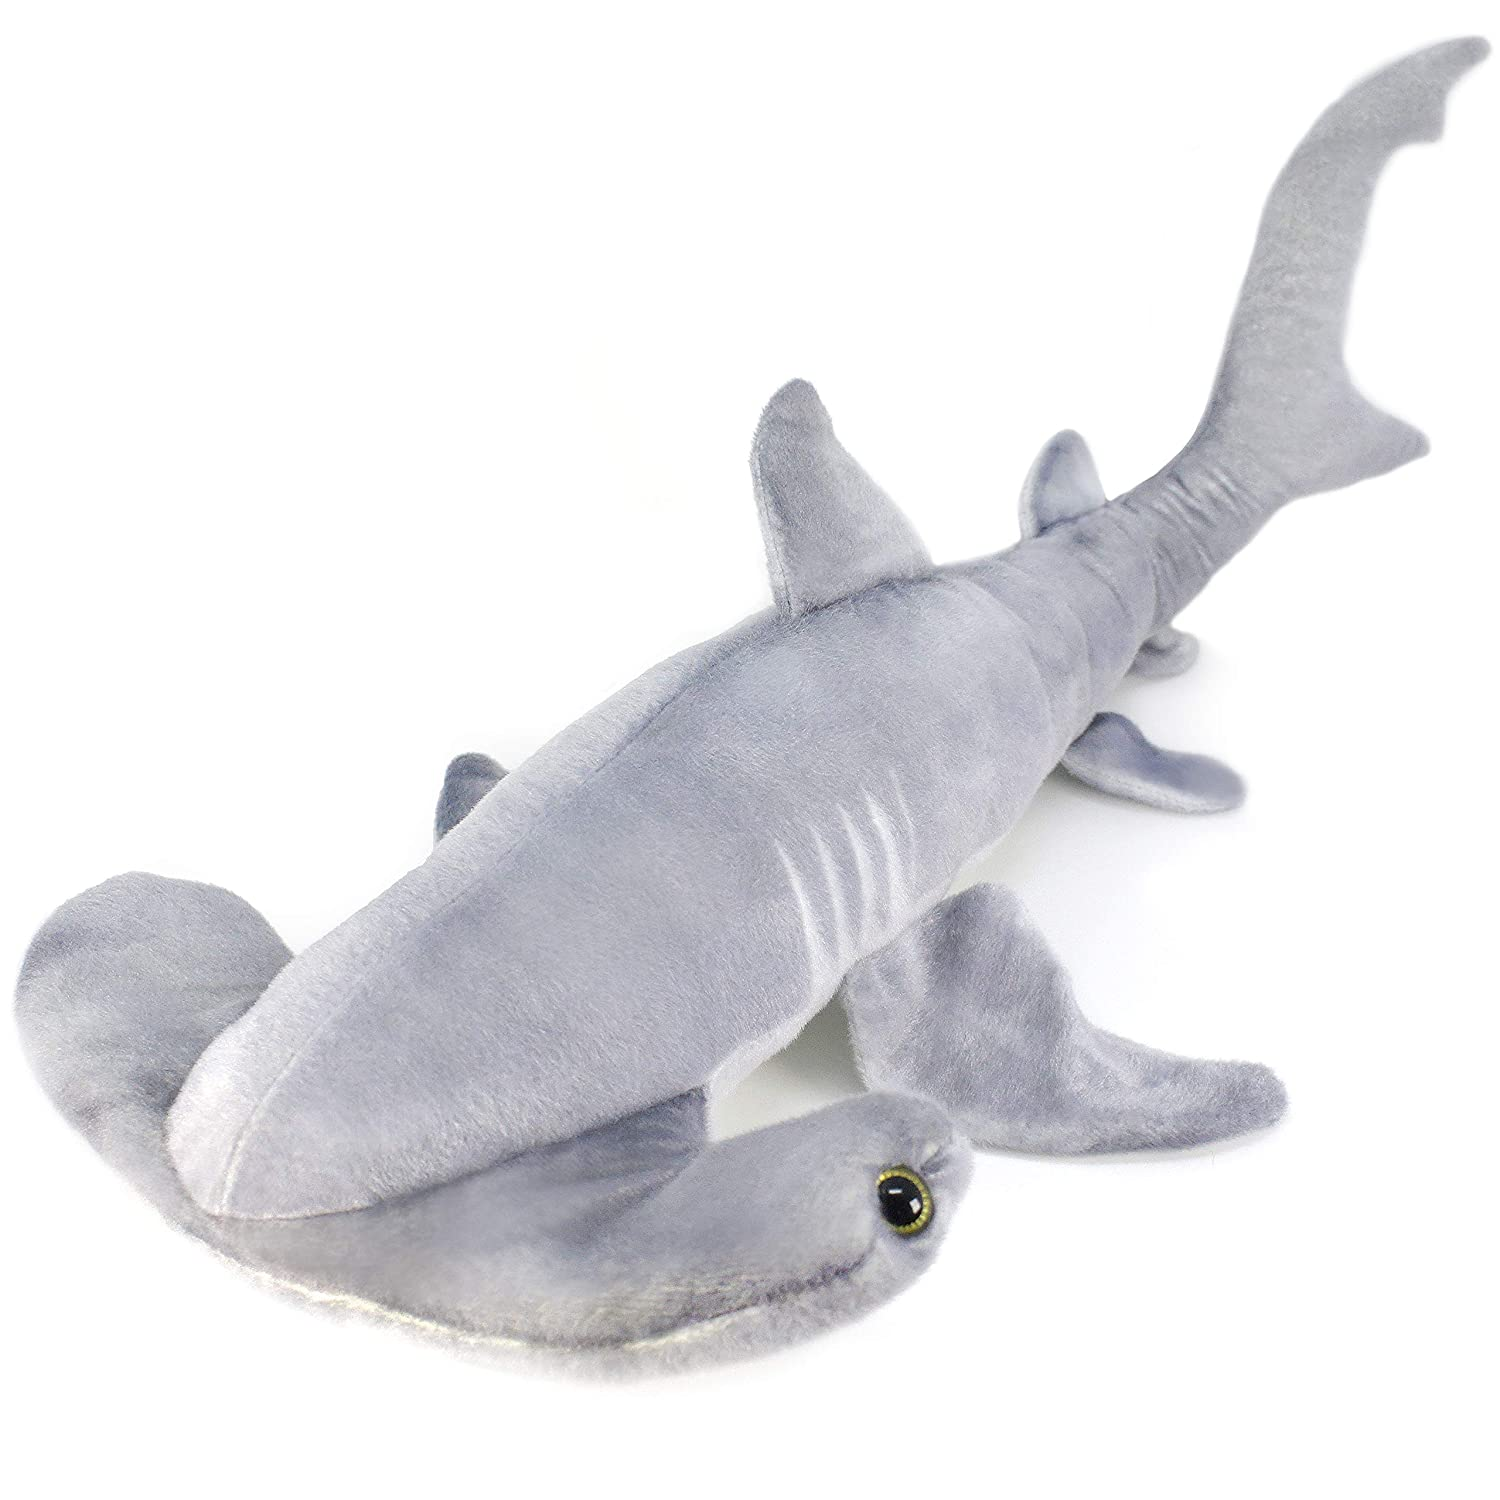 VIAHART MC The Hammerhead Shark | Over 2 1/2 Foot Long Large Hammerhead Shark Stuffed Animal Plush | by Tiger Tale Toys